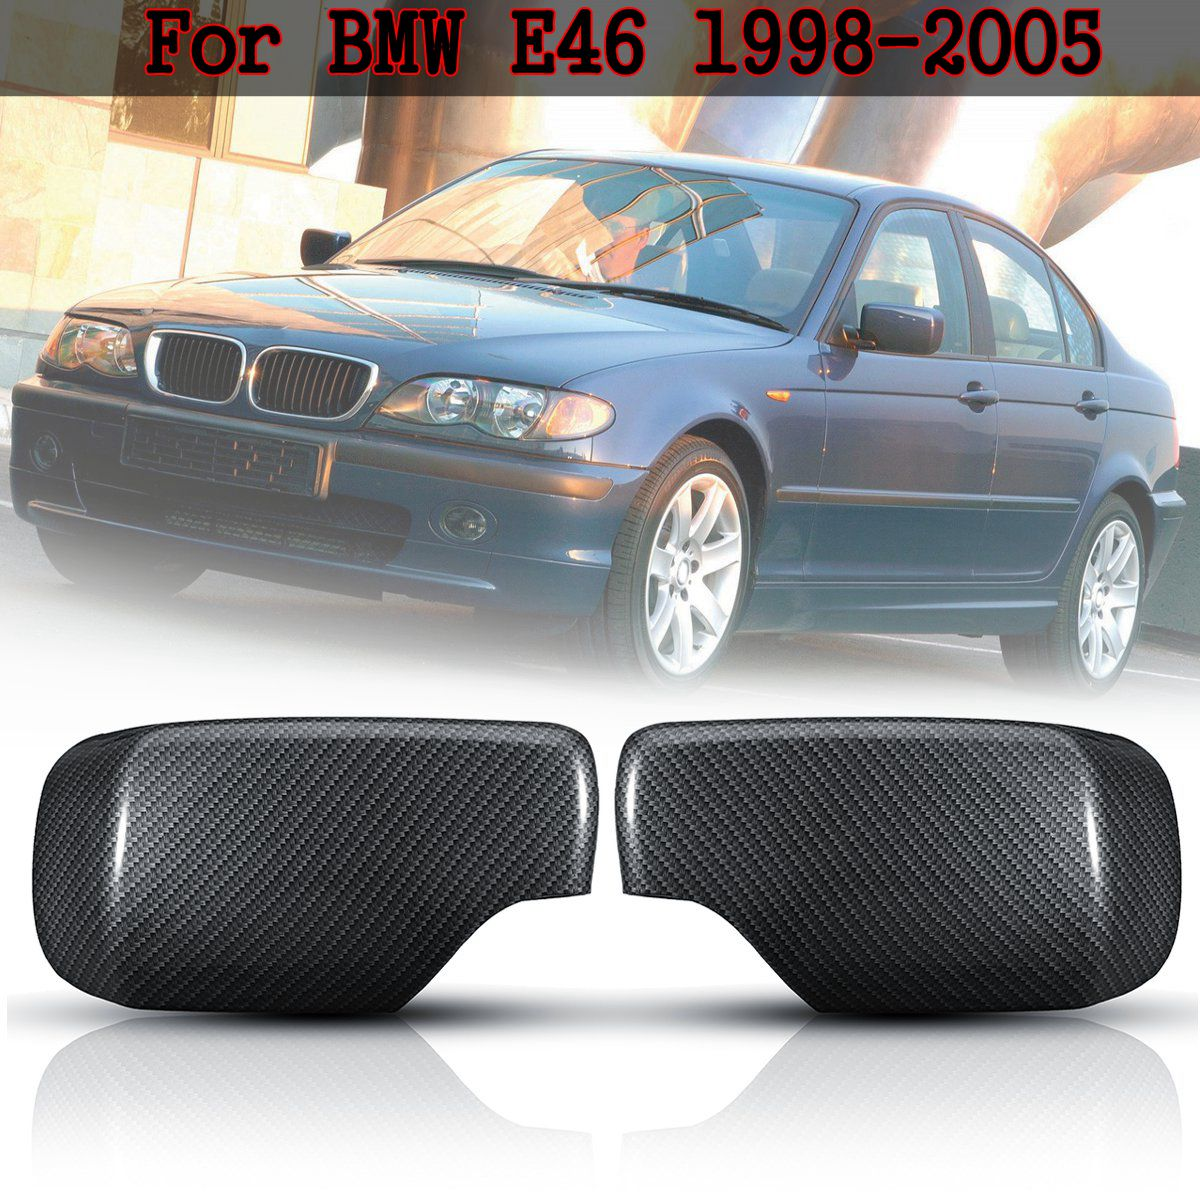 For BMW E46 1998-2005 1 Pair Car Styling Carbon Fiber Wing Door Rearview Heated Mirrors Cap Mirror CoversFor BMW E46 1998-2005 1 Pair Car Styling Carbon Fiber Wing Door Rearview Heated Mirrors Cap Mirror Covers